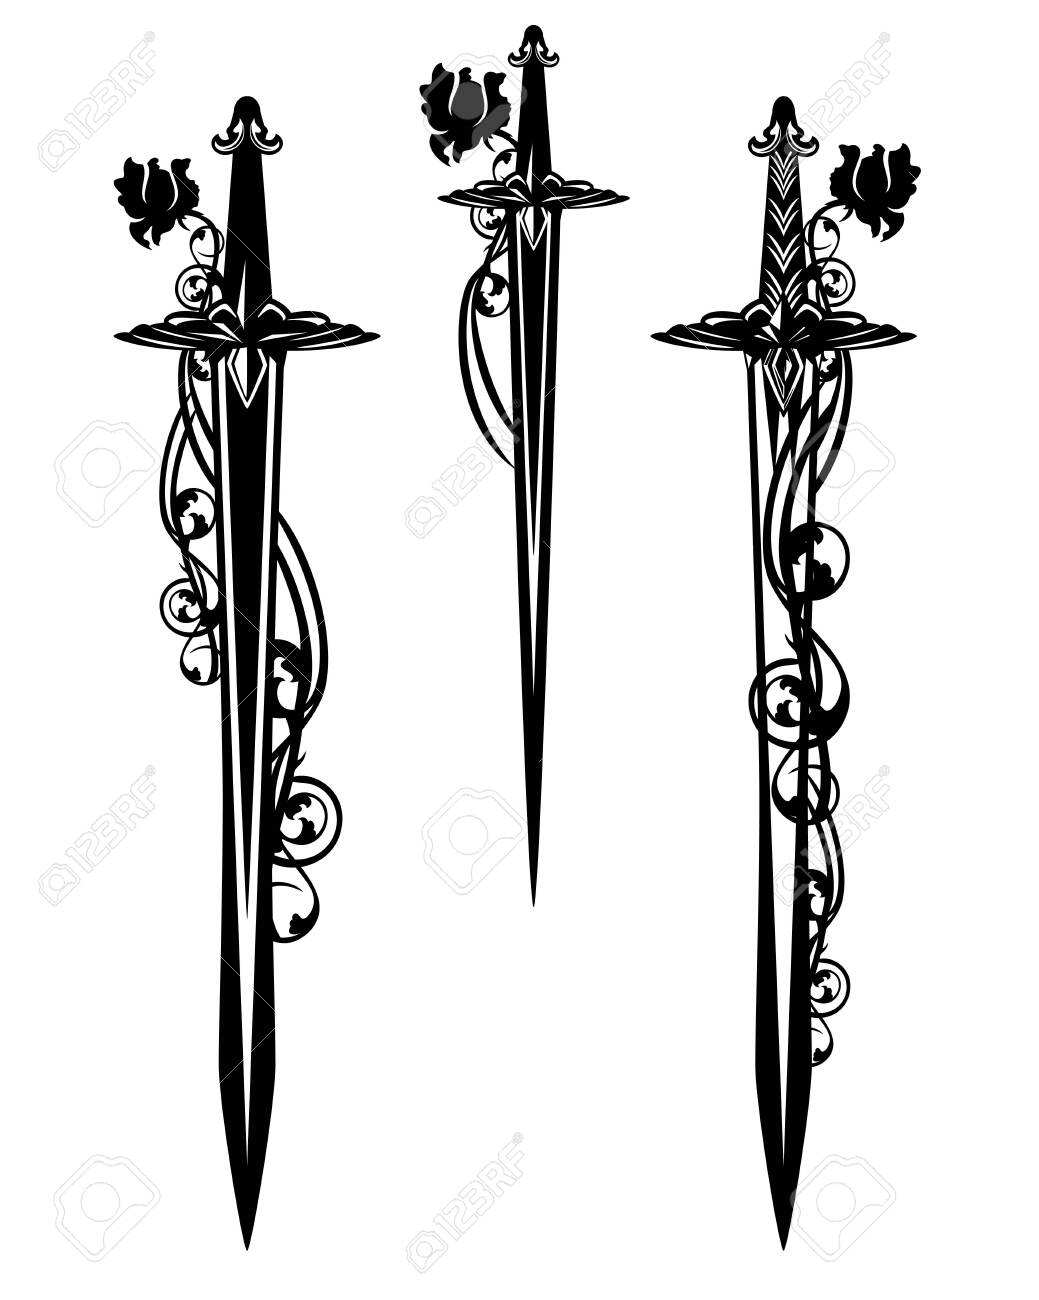 medieval battle sword and dagger blades entwined with rose flowers - black and white design set - 130546580